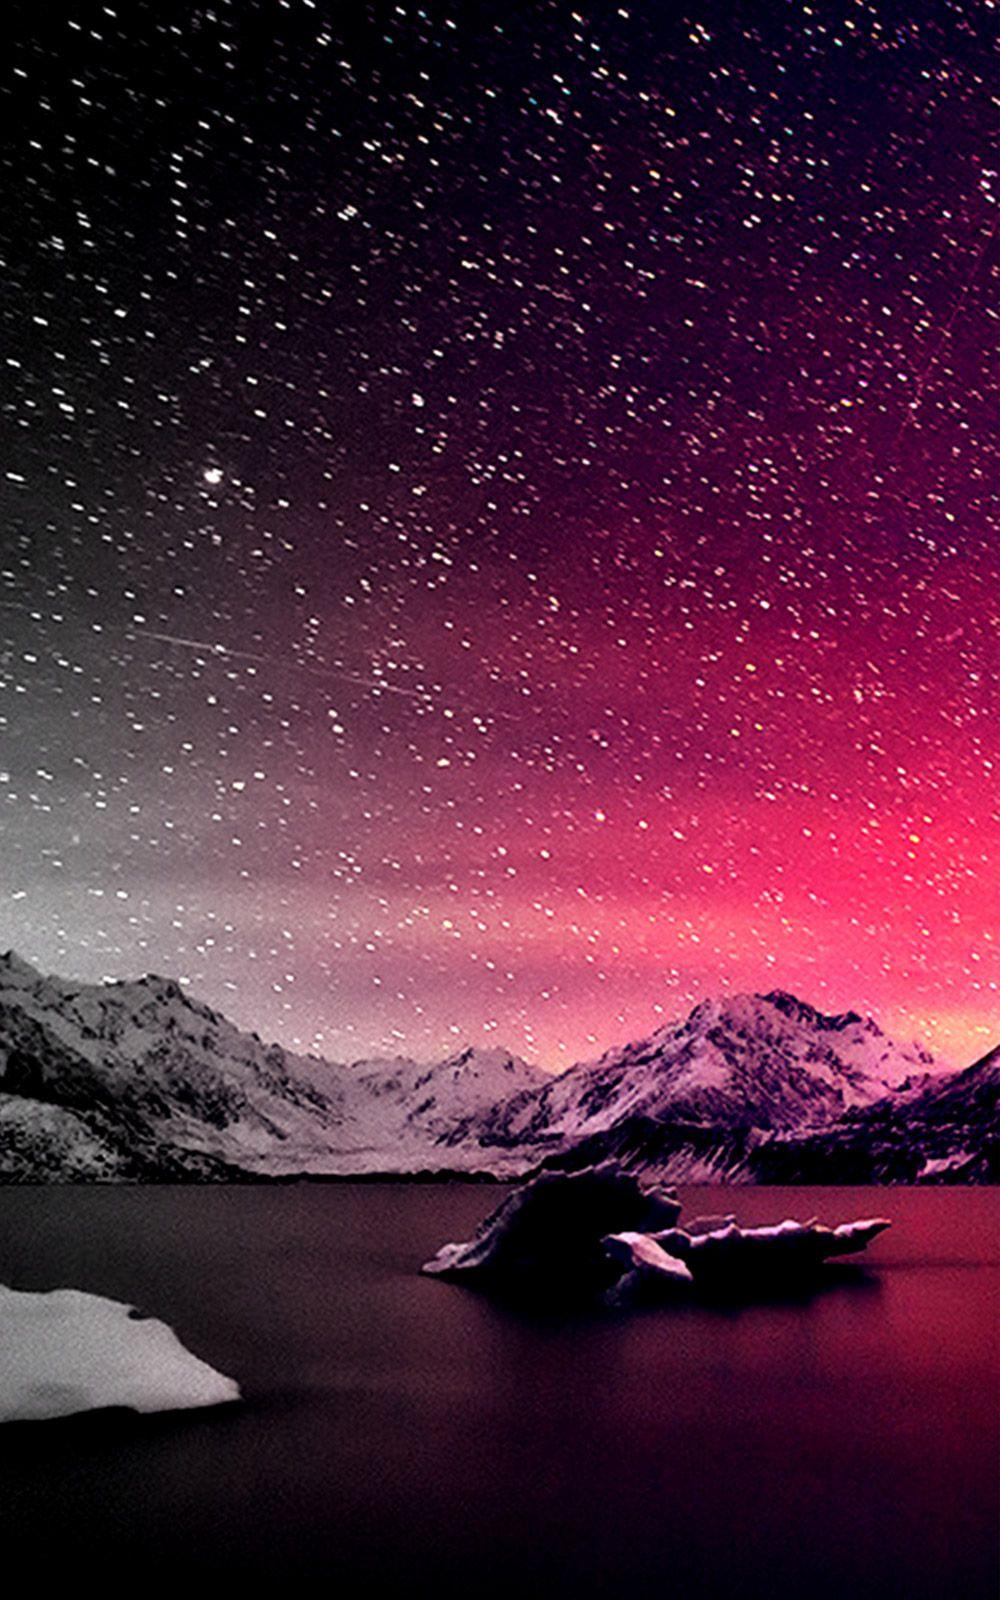 Beautiful Starry Night Sky Wallpapers - Wallpaper Cave